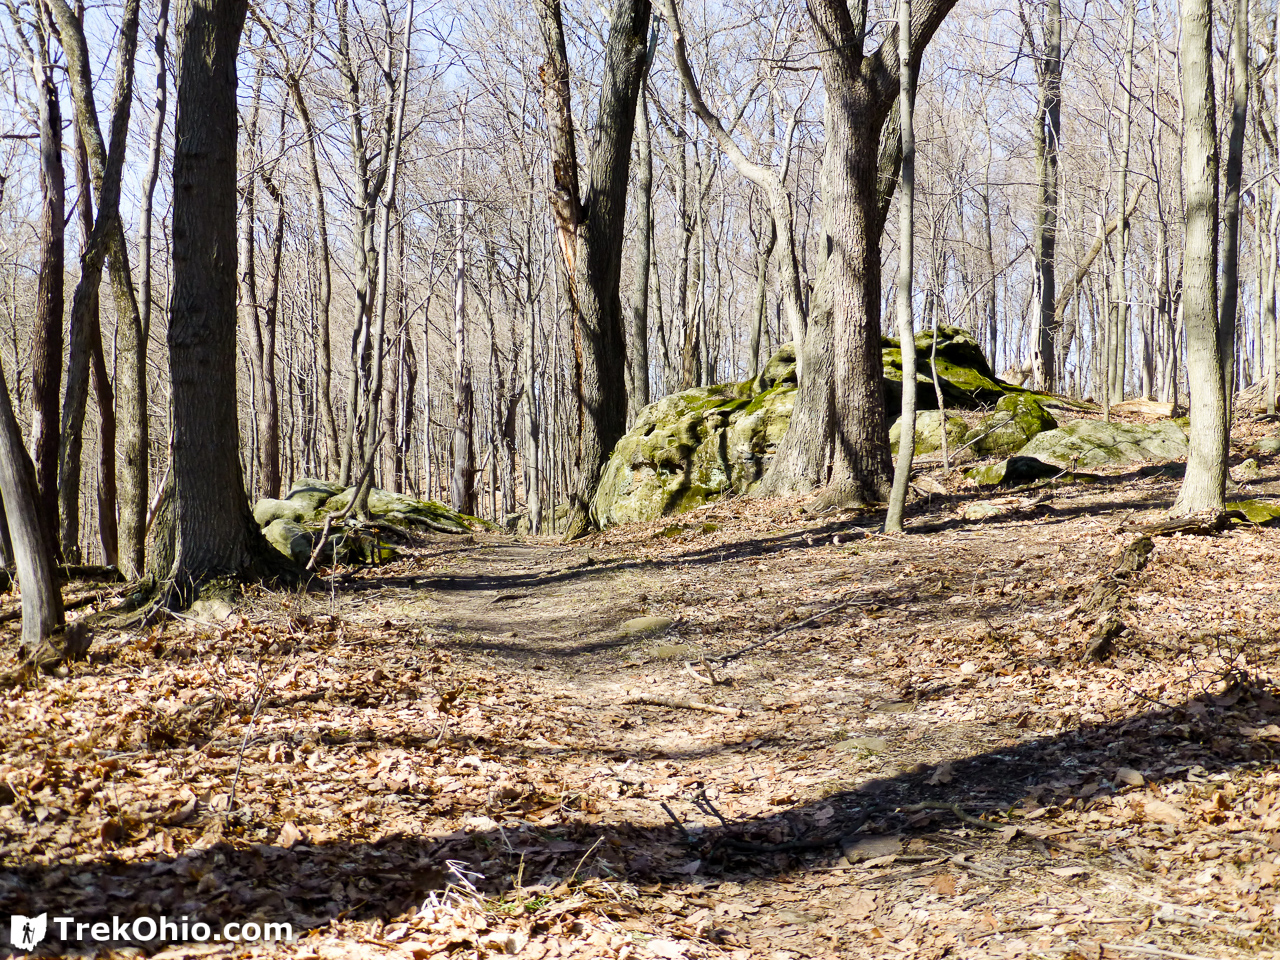 Rock outcroppings along the Shawnee Ridge Trail.